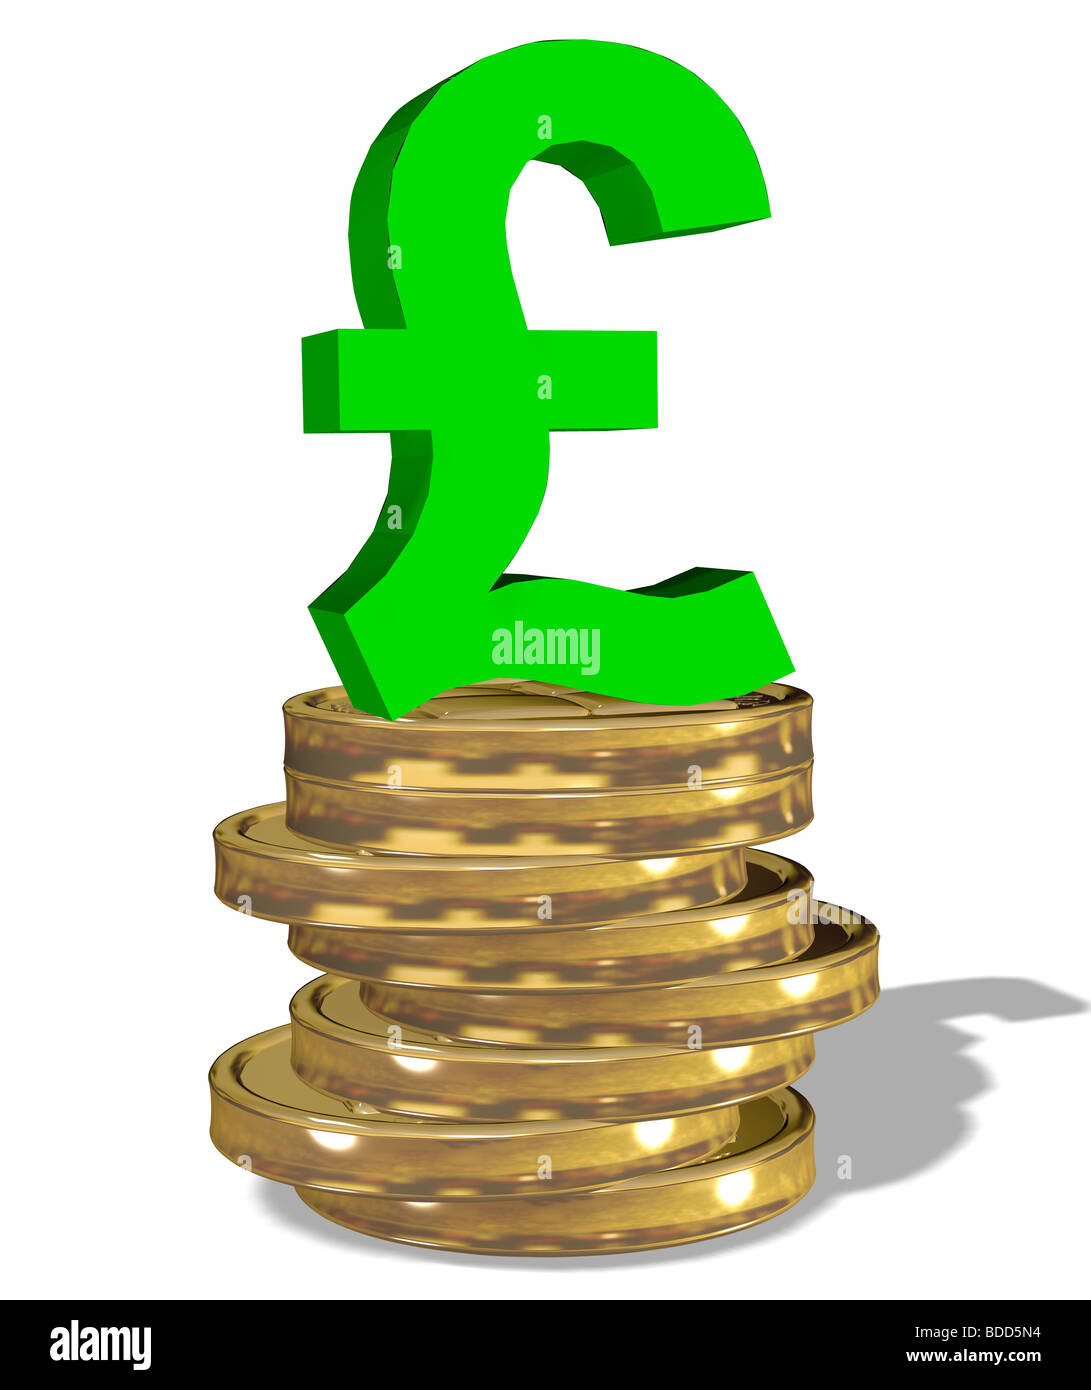 pound sign on a stack of coins - Stock Image